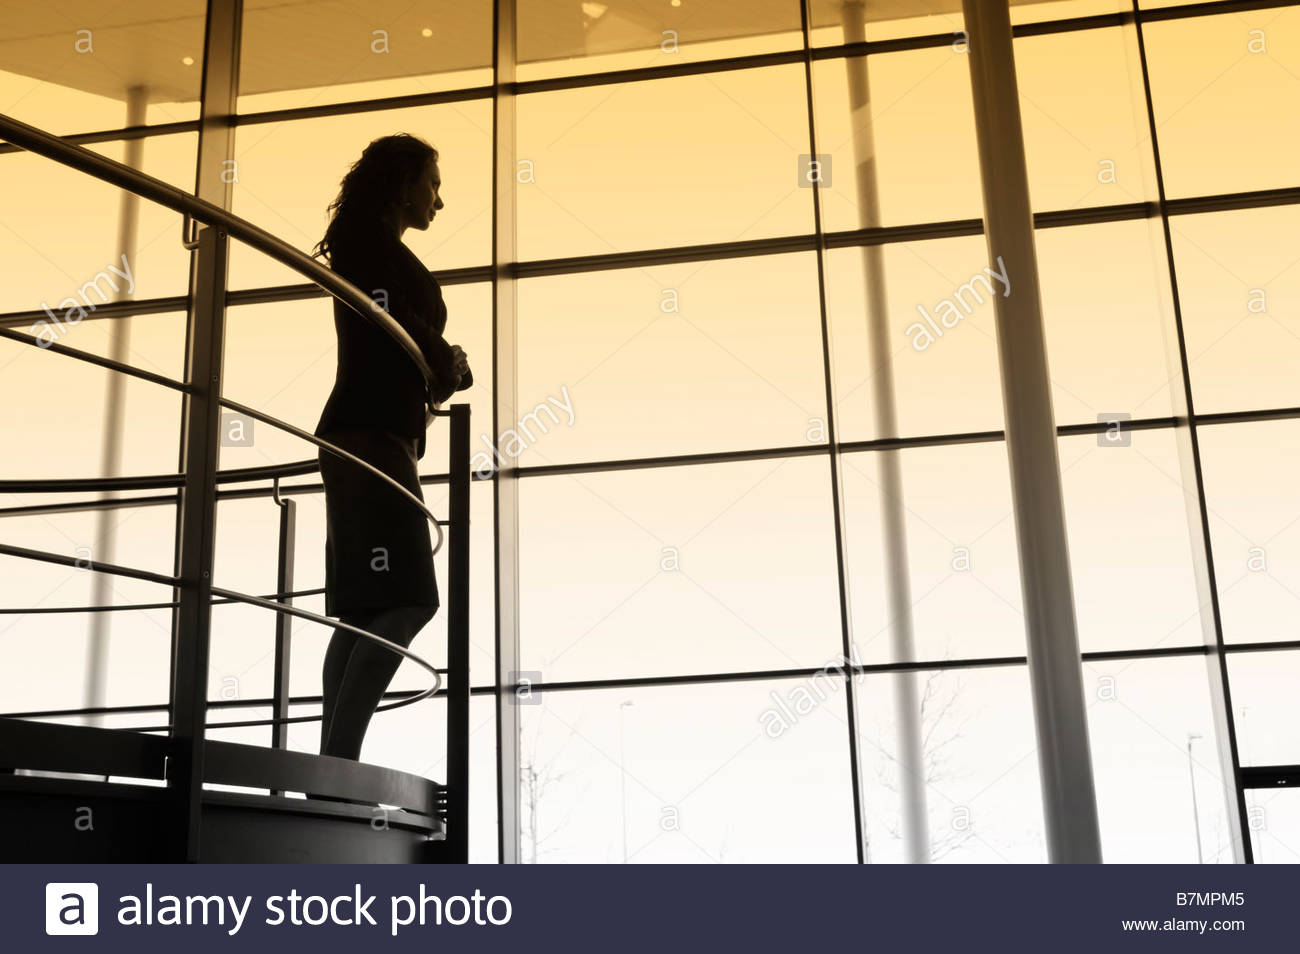 A businesswoman looking over balcony railings in a modern office building - Stock Image